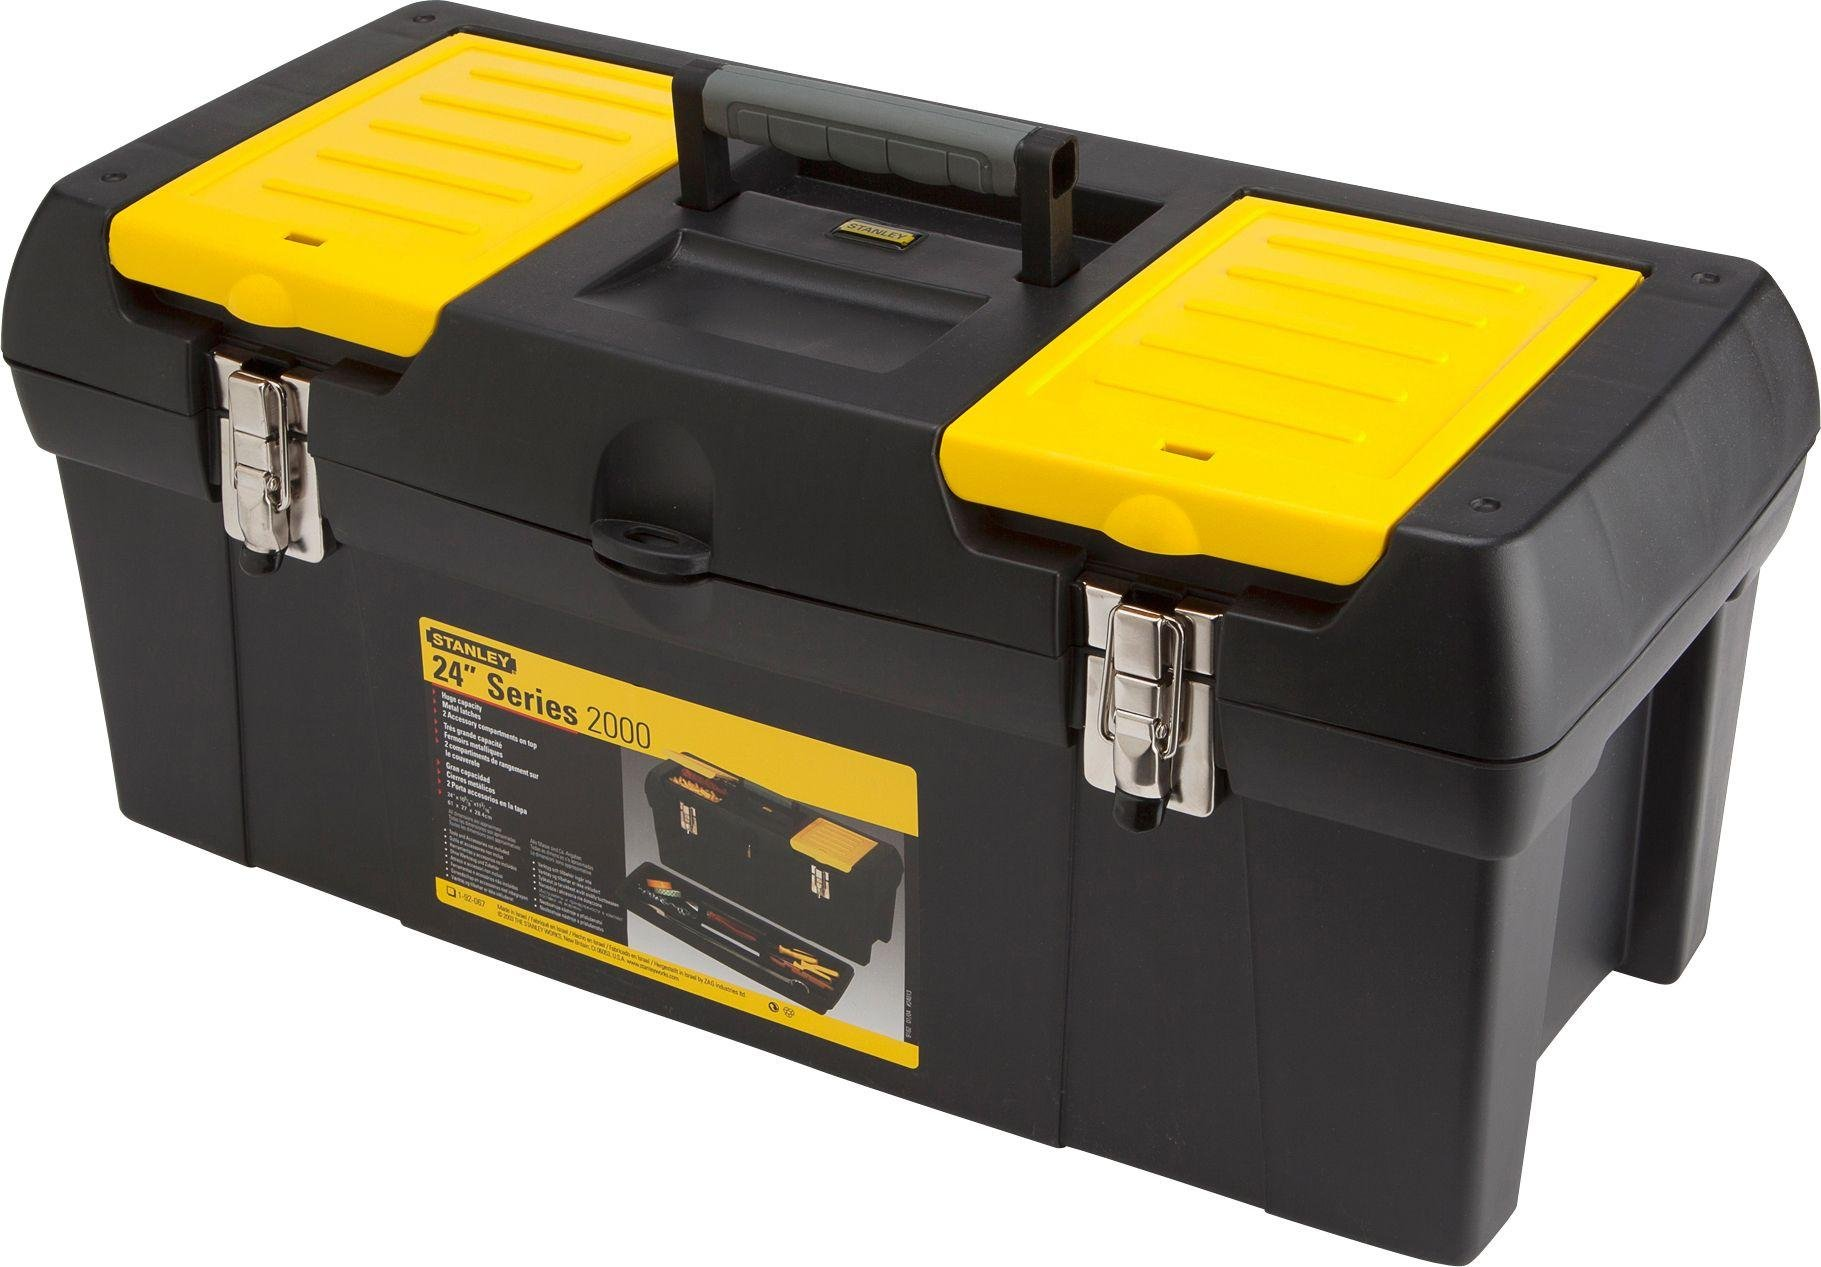 Stanley - 24 Inch Tote Tray Tool Box